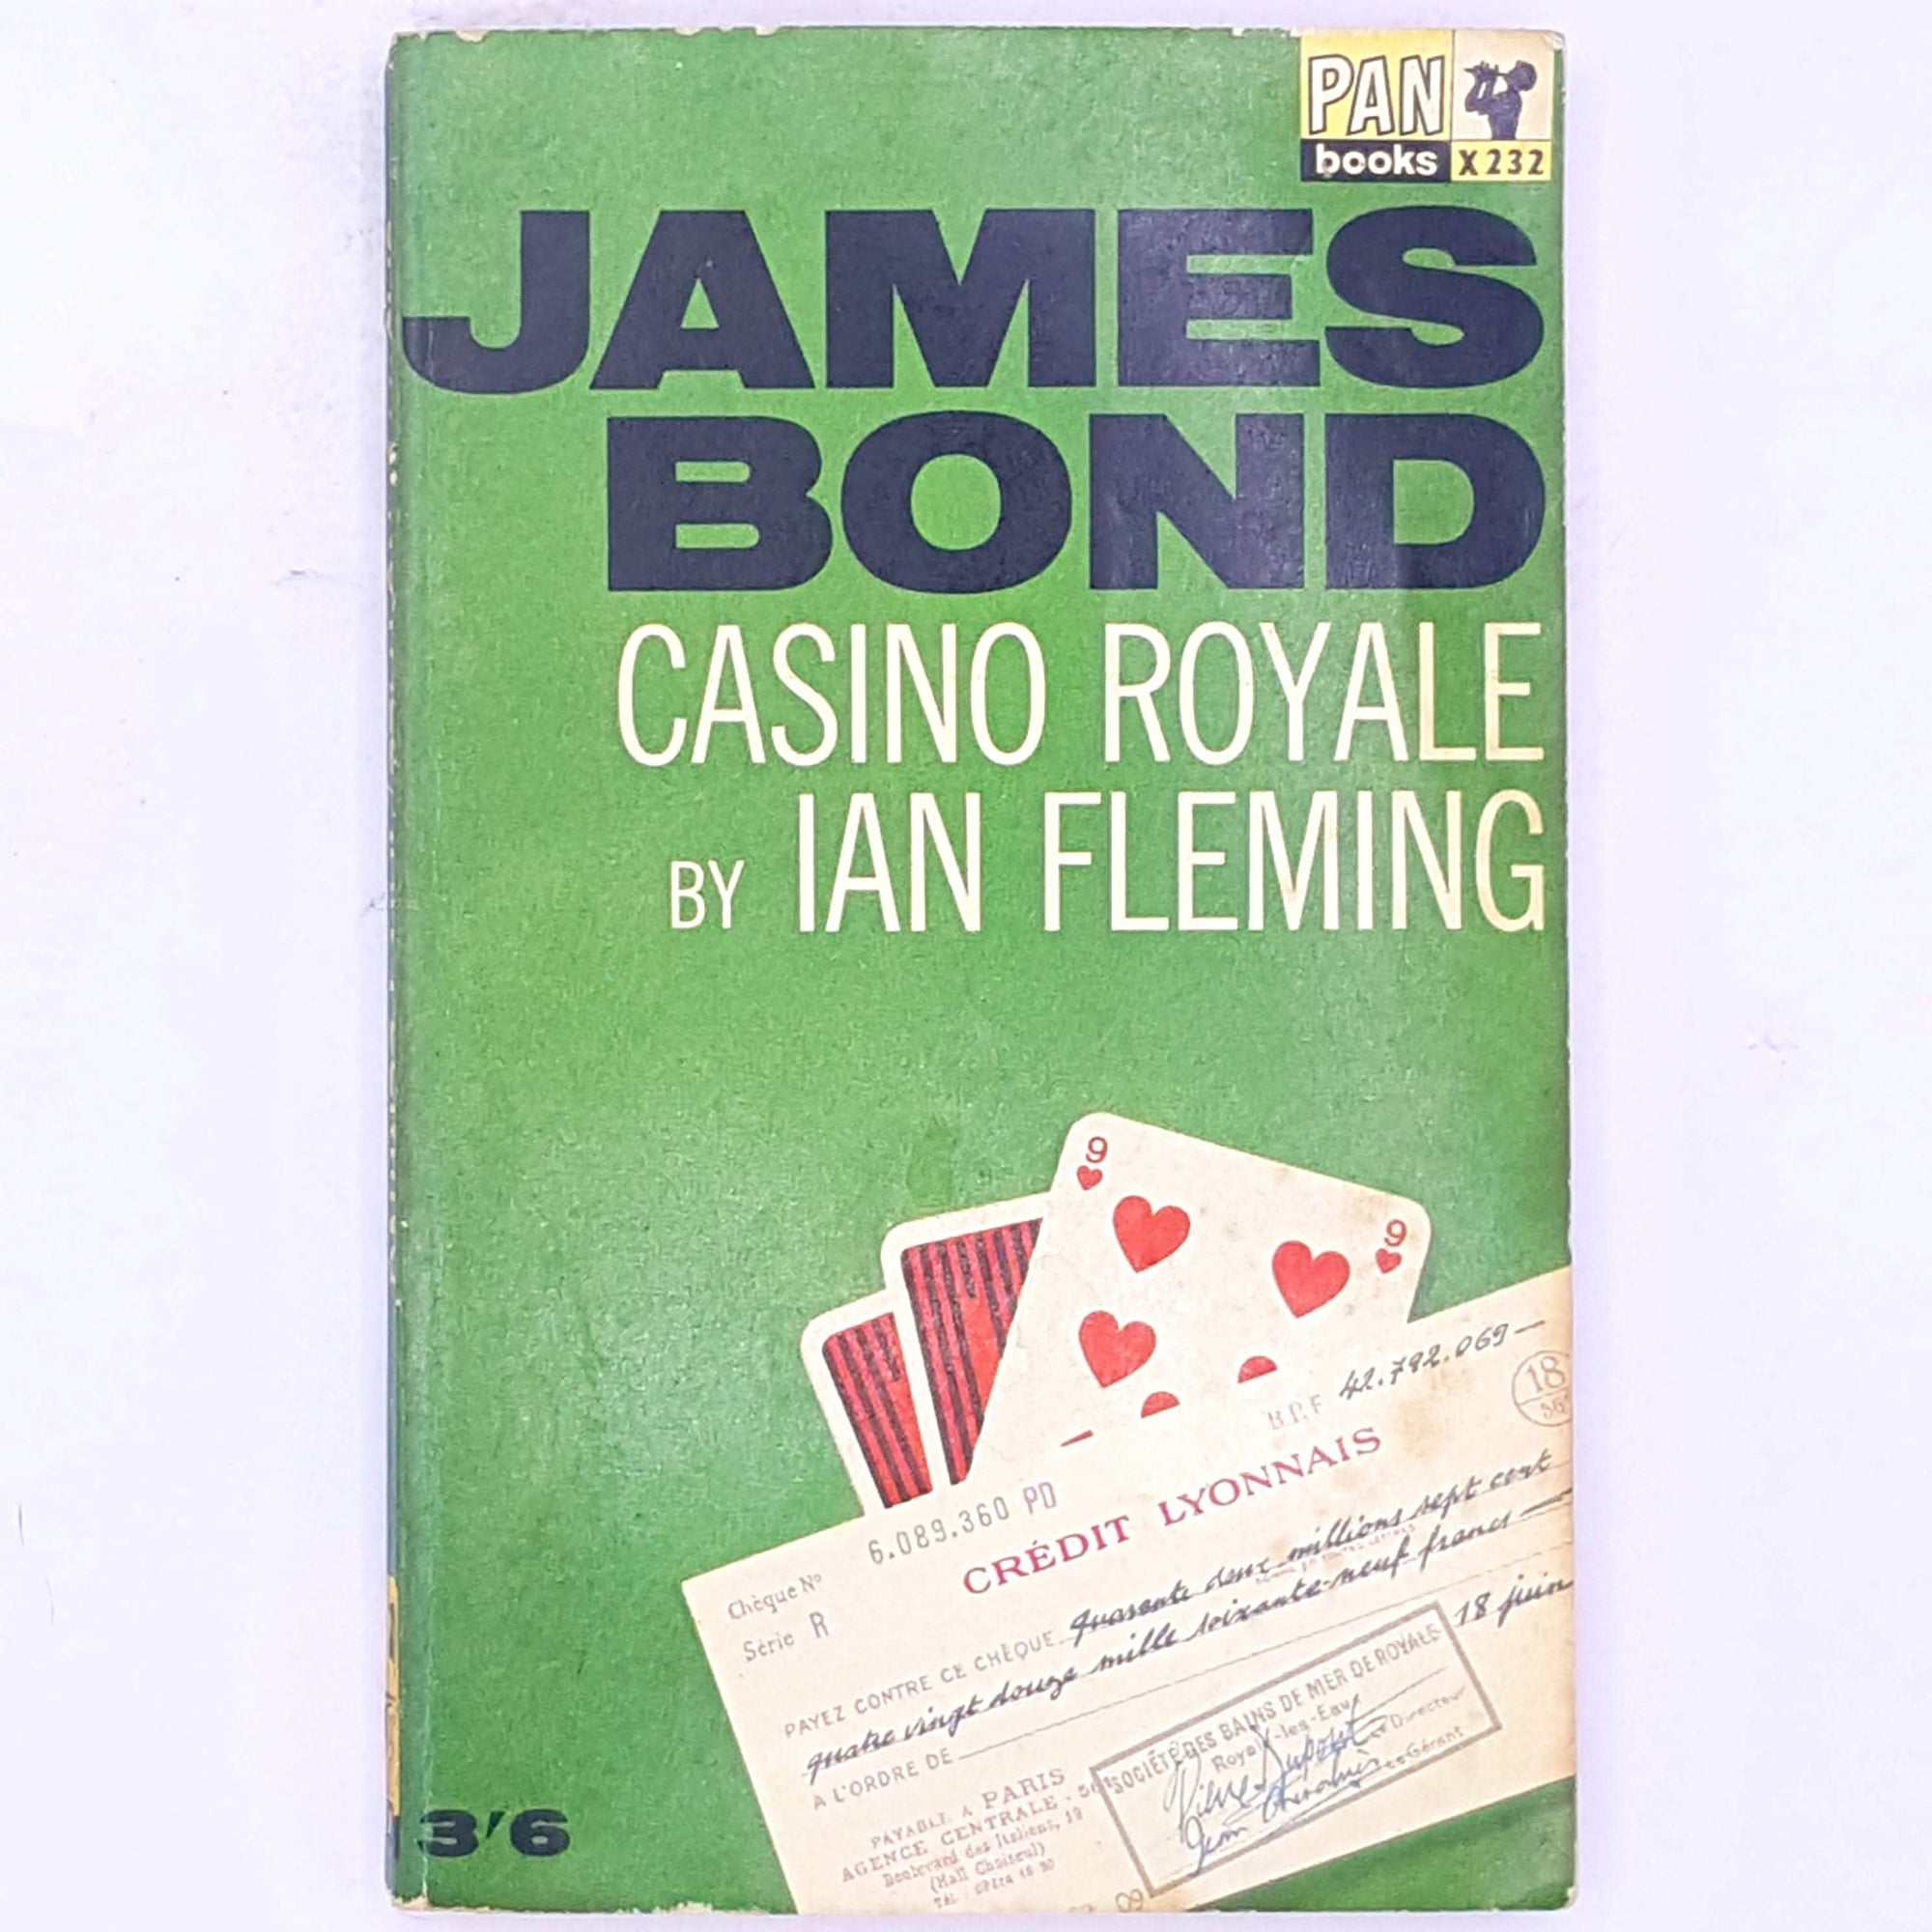 Casino Royale by Ian Fleming - A 007 story